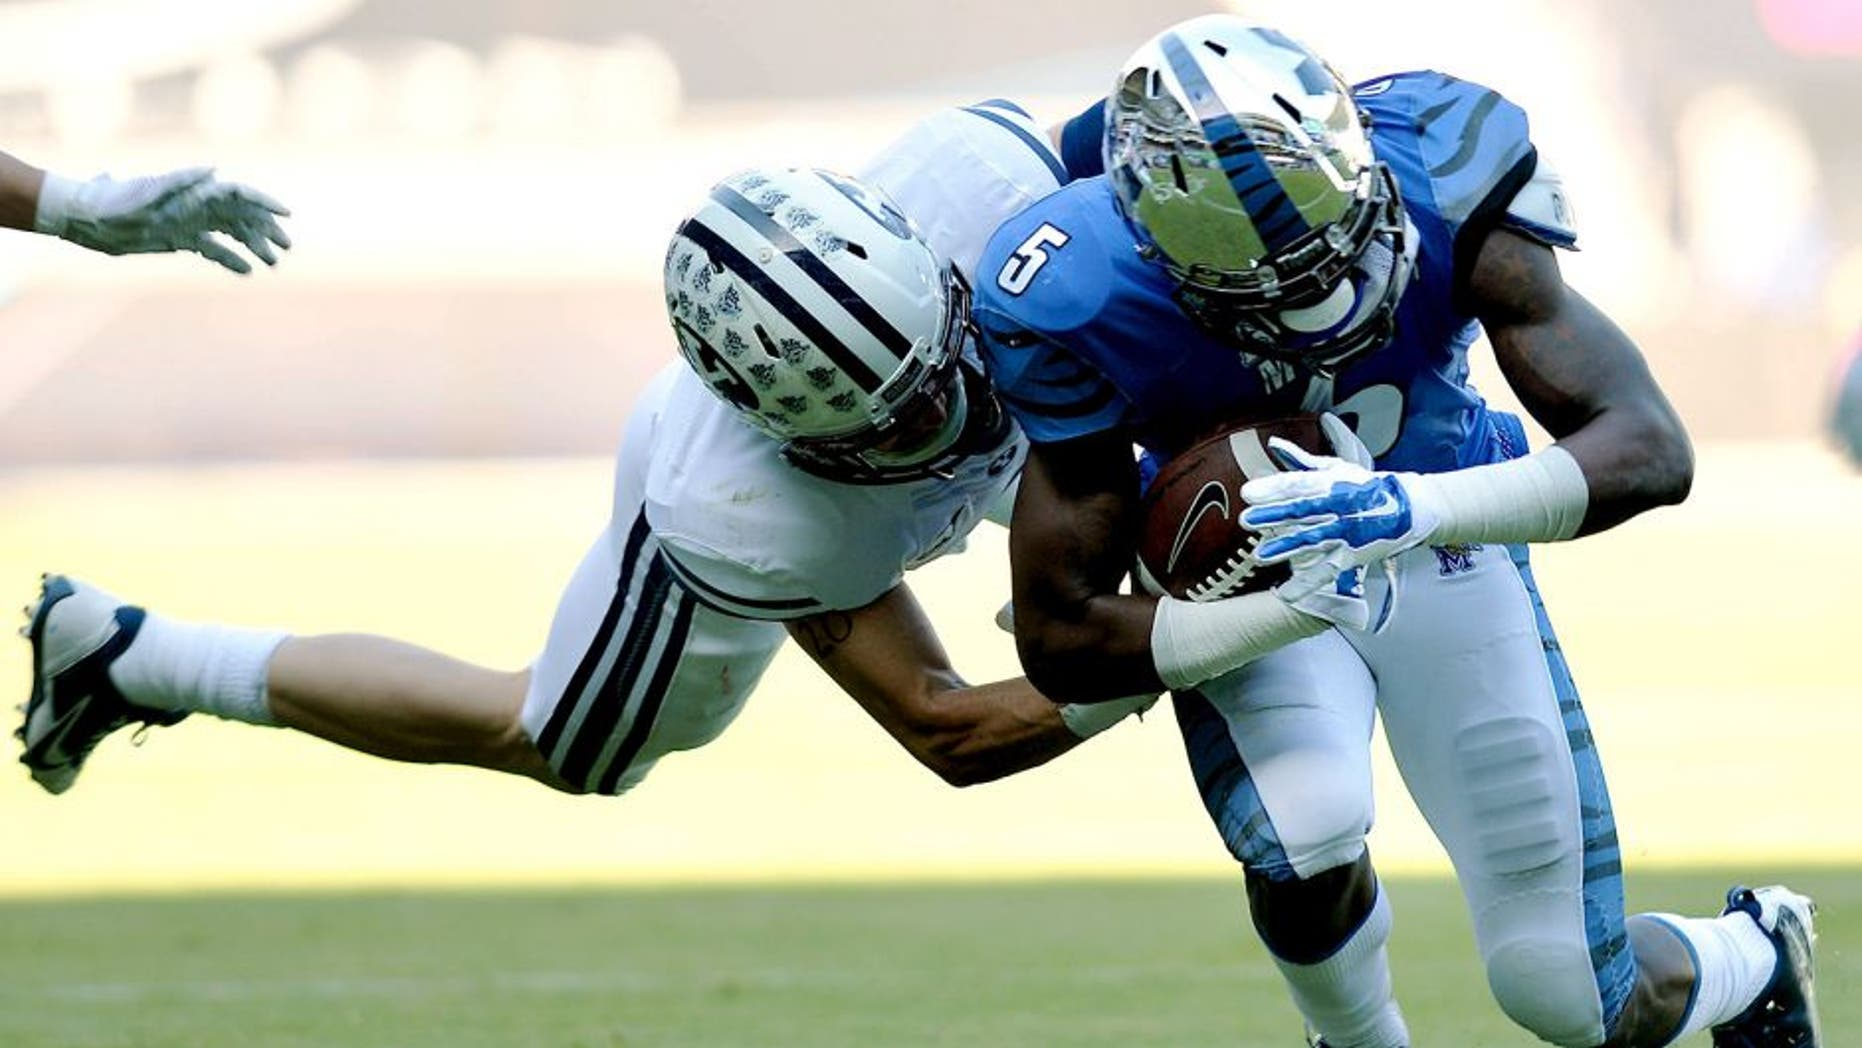 Dec 22, 2014; Miami, FL, USA; Memphis Tigers wide receiver Mose Frazier (5) is tackled by Brigham Young Cougars linebacker Alani Fua (5) during the first quarter in the Miami Beach Bowl at Marlins Park. Mandatory Credit: Steve Mitchell-USA TODAY Sports